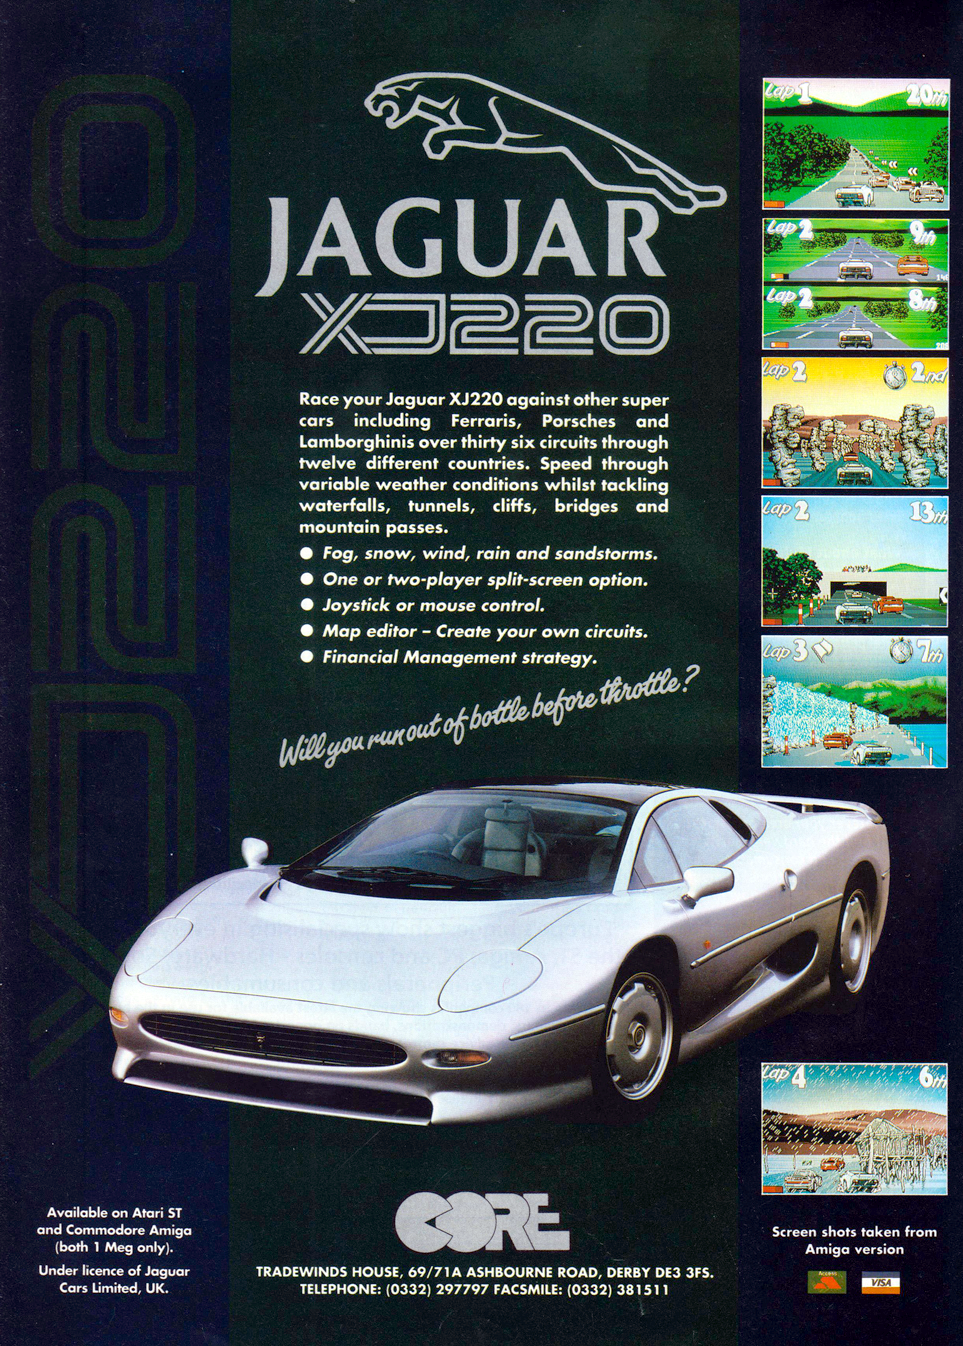 In the early nineties, the Jaguar XJ220 was the fastest serial-produced car ever. Core Design acquired the right to build a game around it, in a move to counter Gremlin's immensely successful Lotus series.  Just like Lotus, Jaguar XJ220 is viewed from behind the racer. There are 32 tracks all over the world, with varying road conditions and animated weather conditions such as rain and fog in England, snow in Switzerland, and tumbleweed crossing the street in Egypt. You race your Jaguar in a constructor grand prix, with opponents running for Porsche, Ferrari and other famous makers. Between races, you must mend the damage your car has sustained, which eats up your prize money. Background music is selected through a dashboard CD player, which also features some rather uninspiring radio stations.  The game can also be played in a two-player split-screen mode and features a track editor for when you tire of the built-in courses.